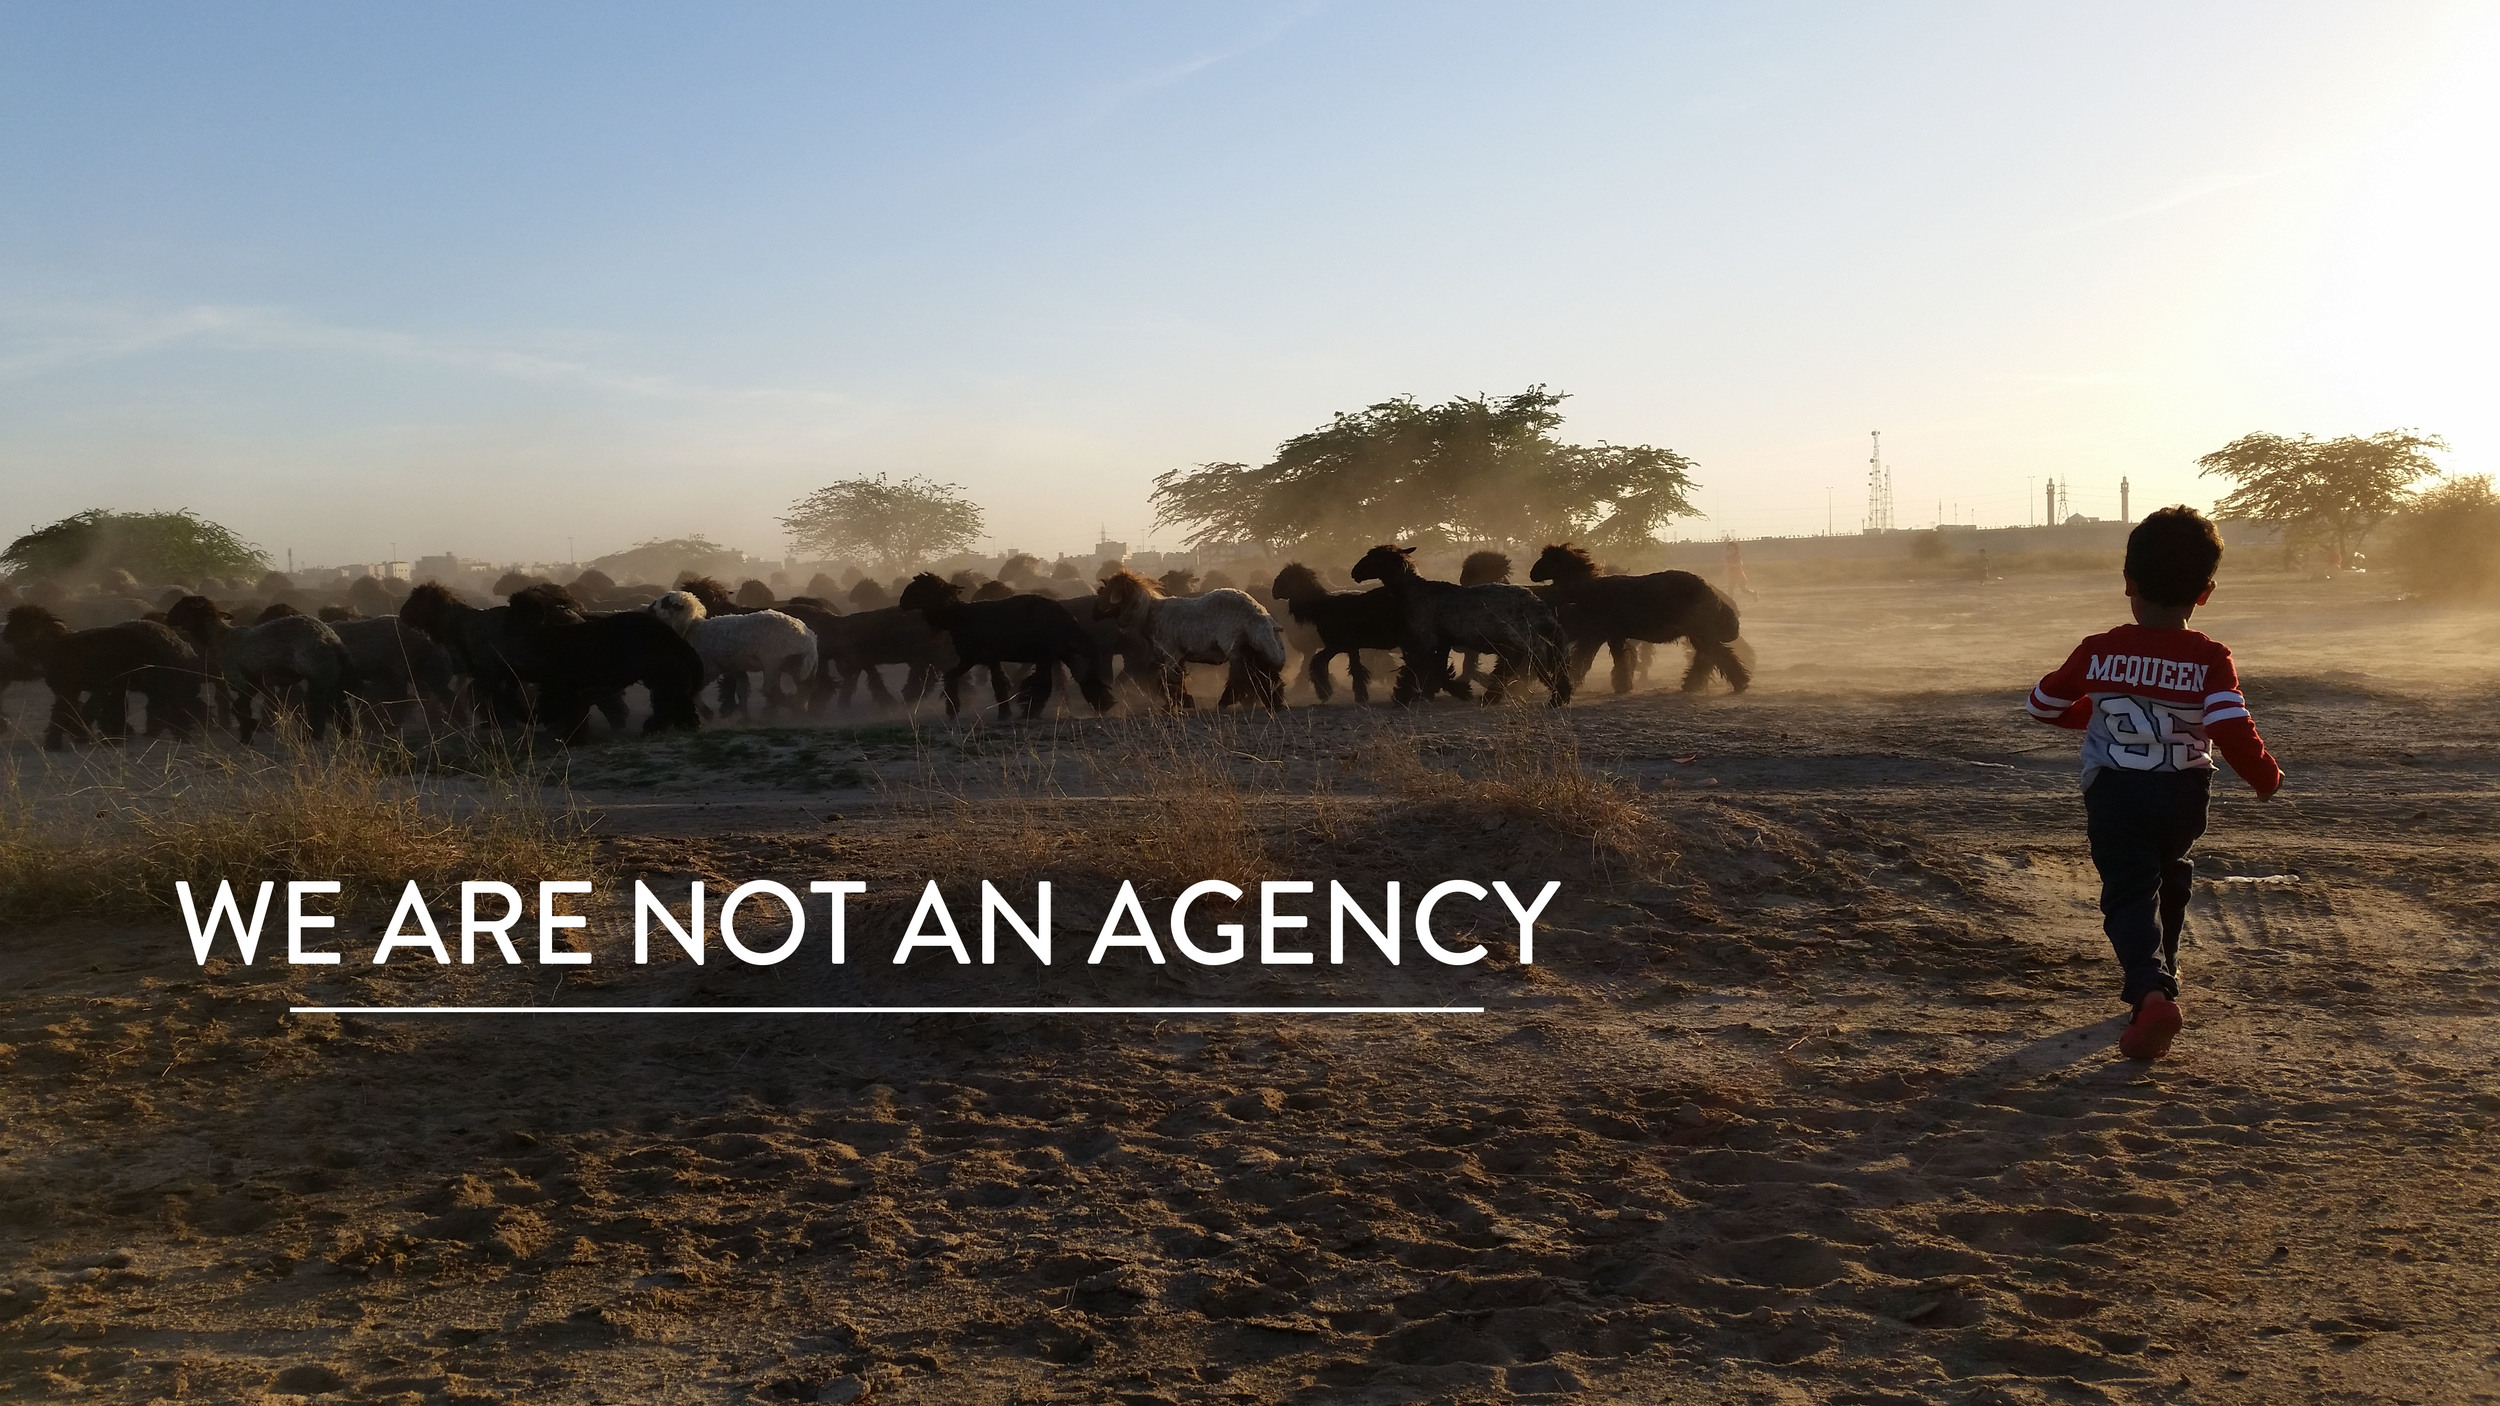 We Are Not An Agency